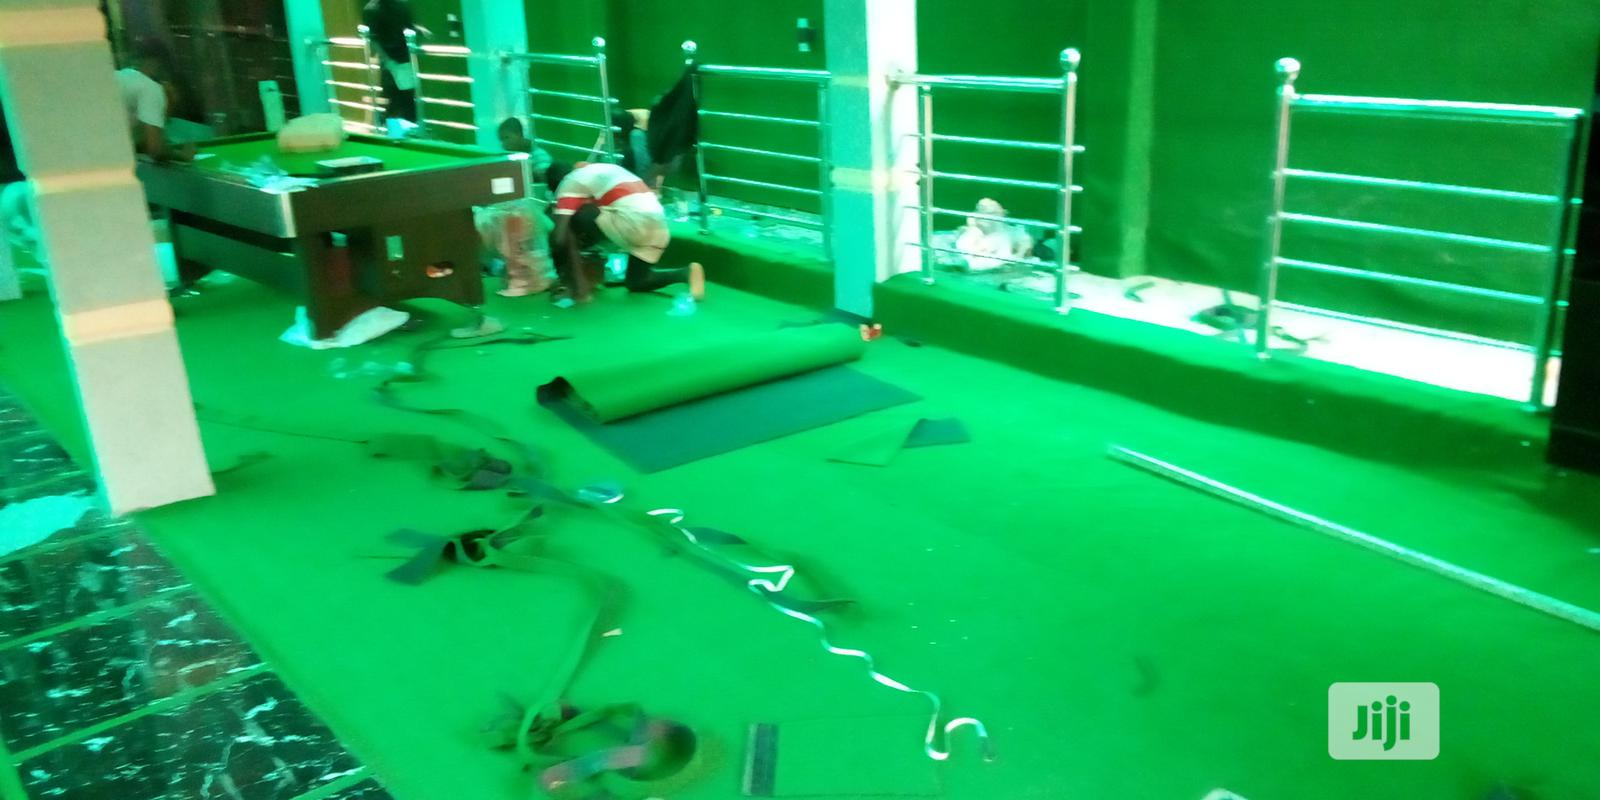 Artificial Grass In Nigeria For Sale For House Decoration